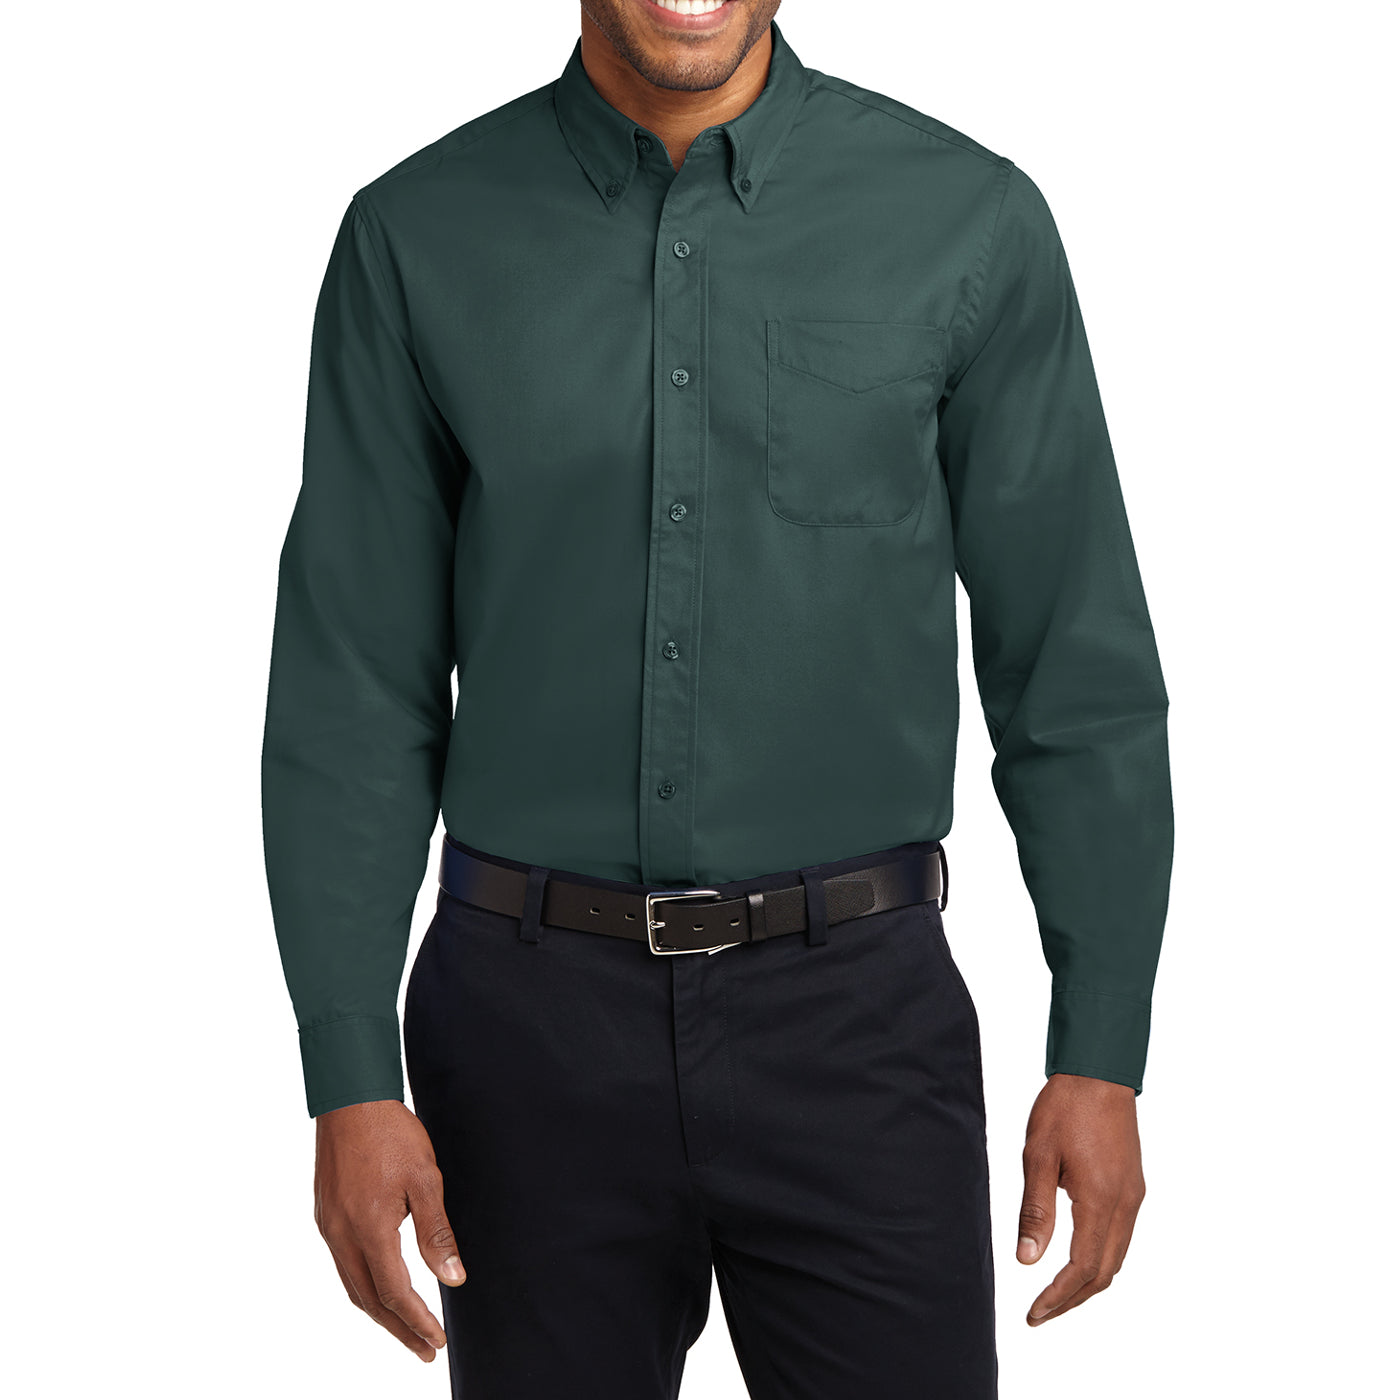 Men's Long Sleeve Easy Care Shirt - Dark Green/ Navy - Front